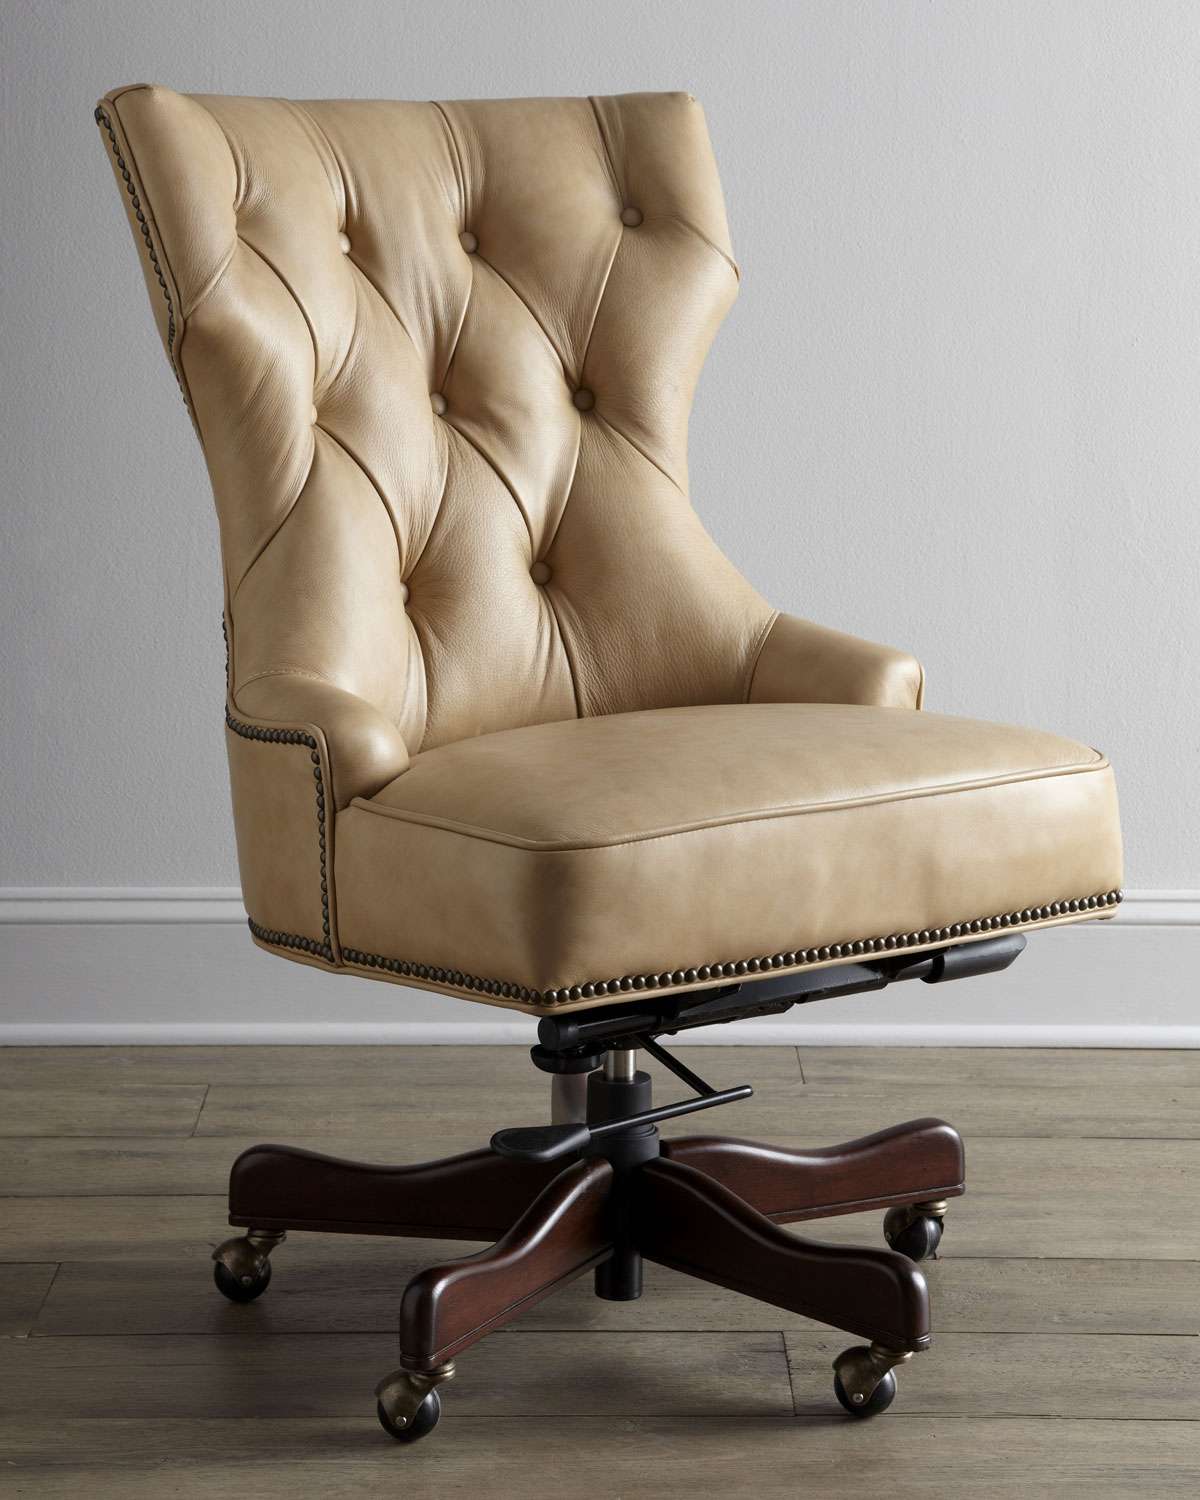 tufted desk chair. Tufted Desk Chair